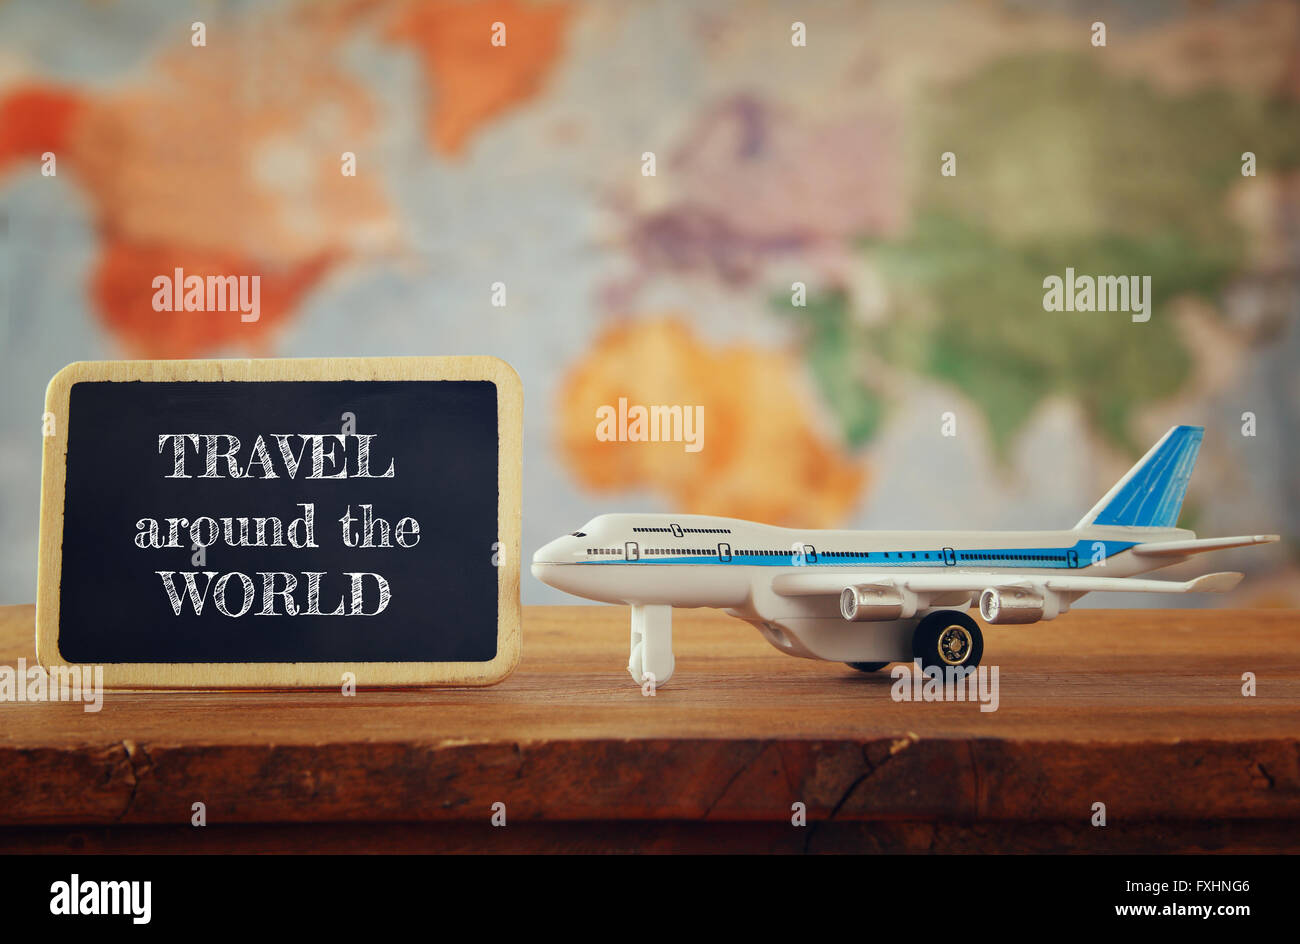 airplane toy next to blackboard. vintage filtered image. selective focus - Stock Image